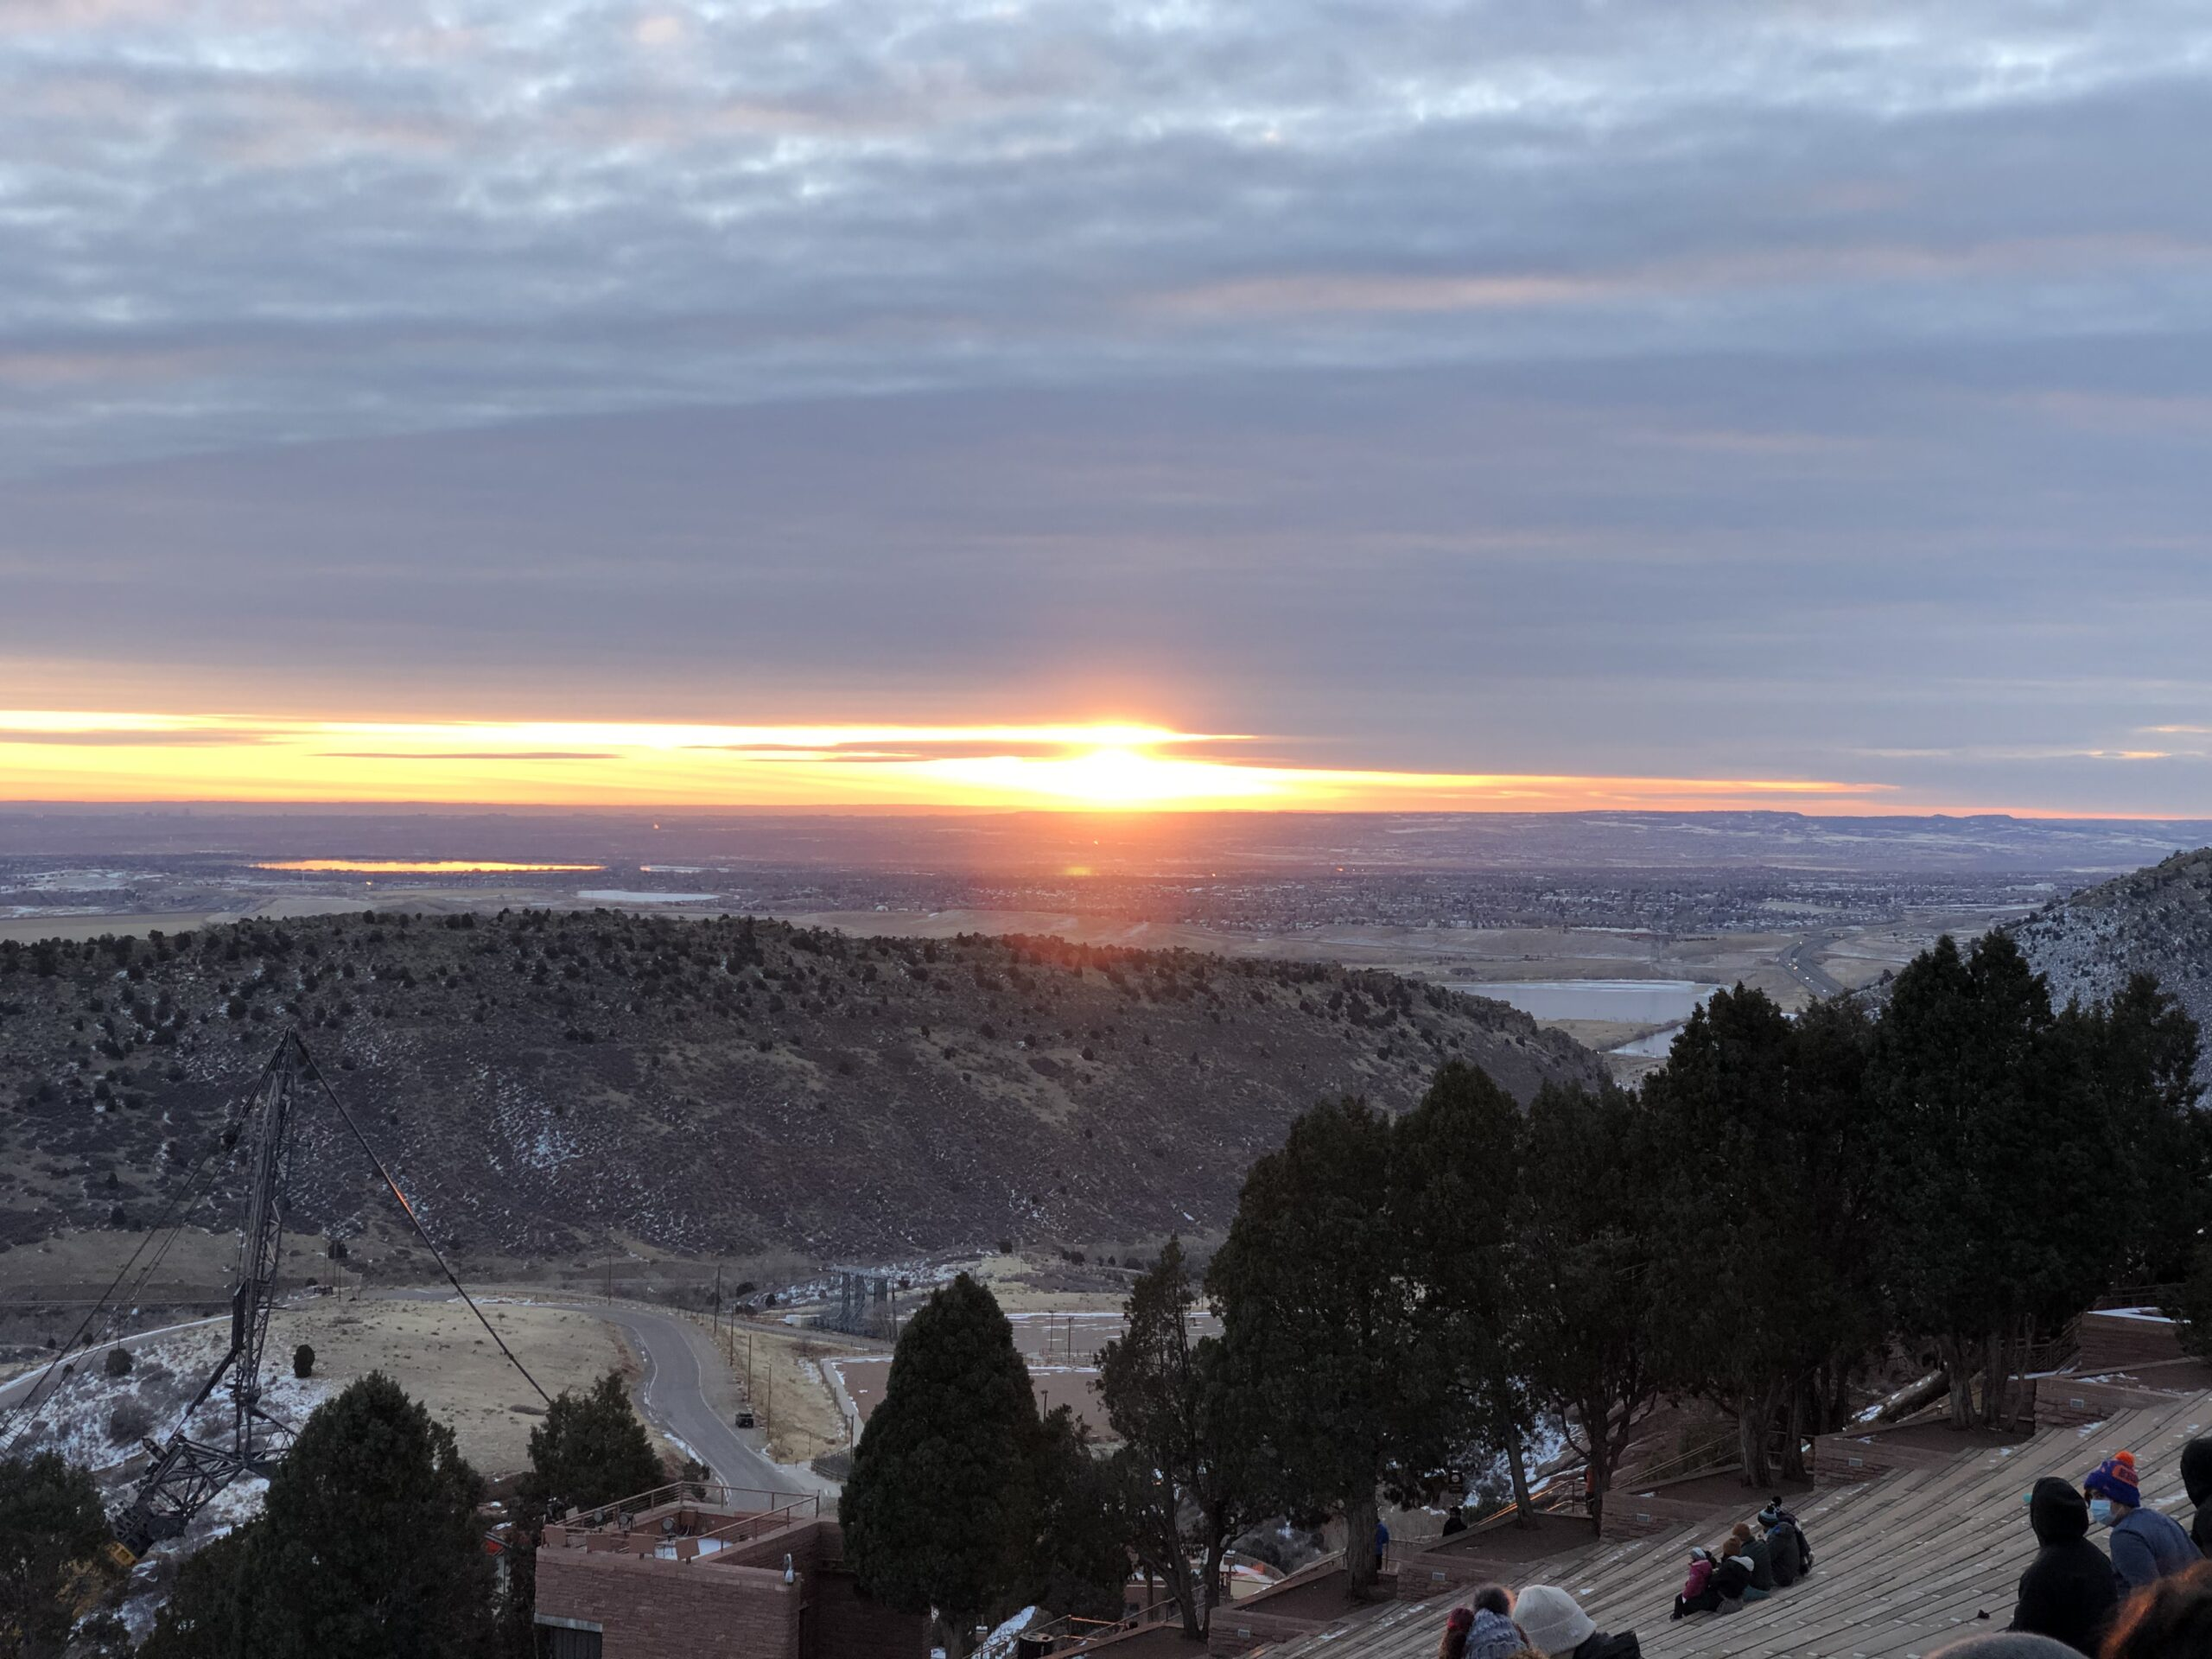 1st sunrise of 2021 at Red Rocks Amphitheater